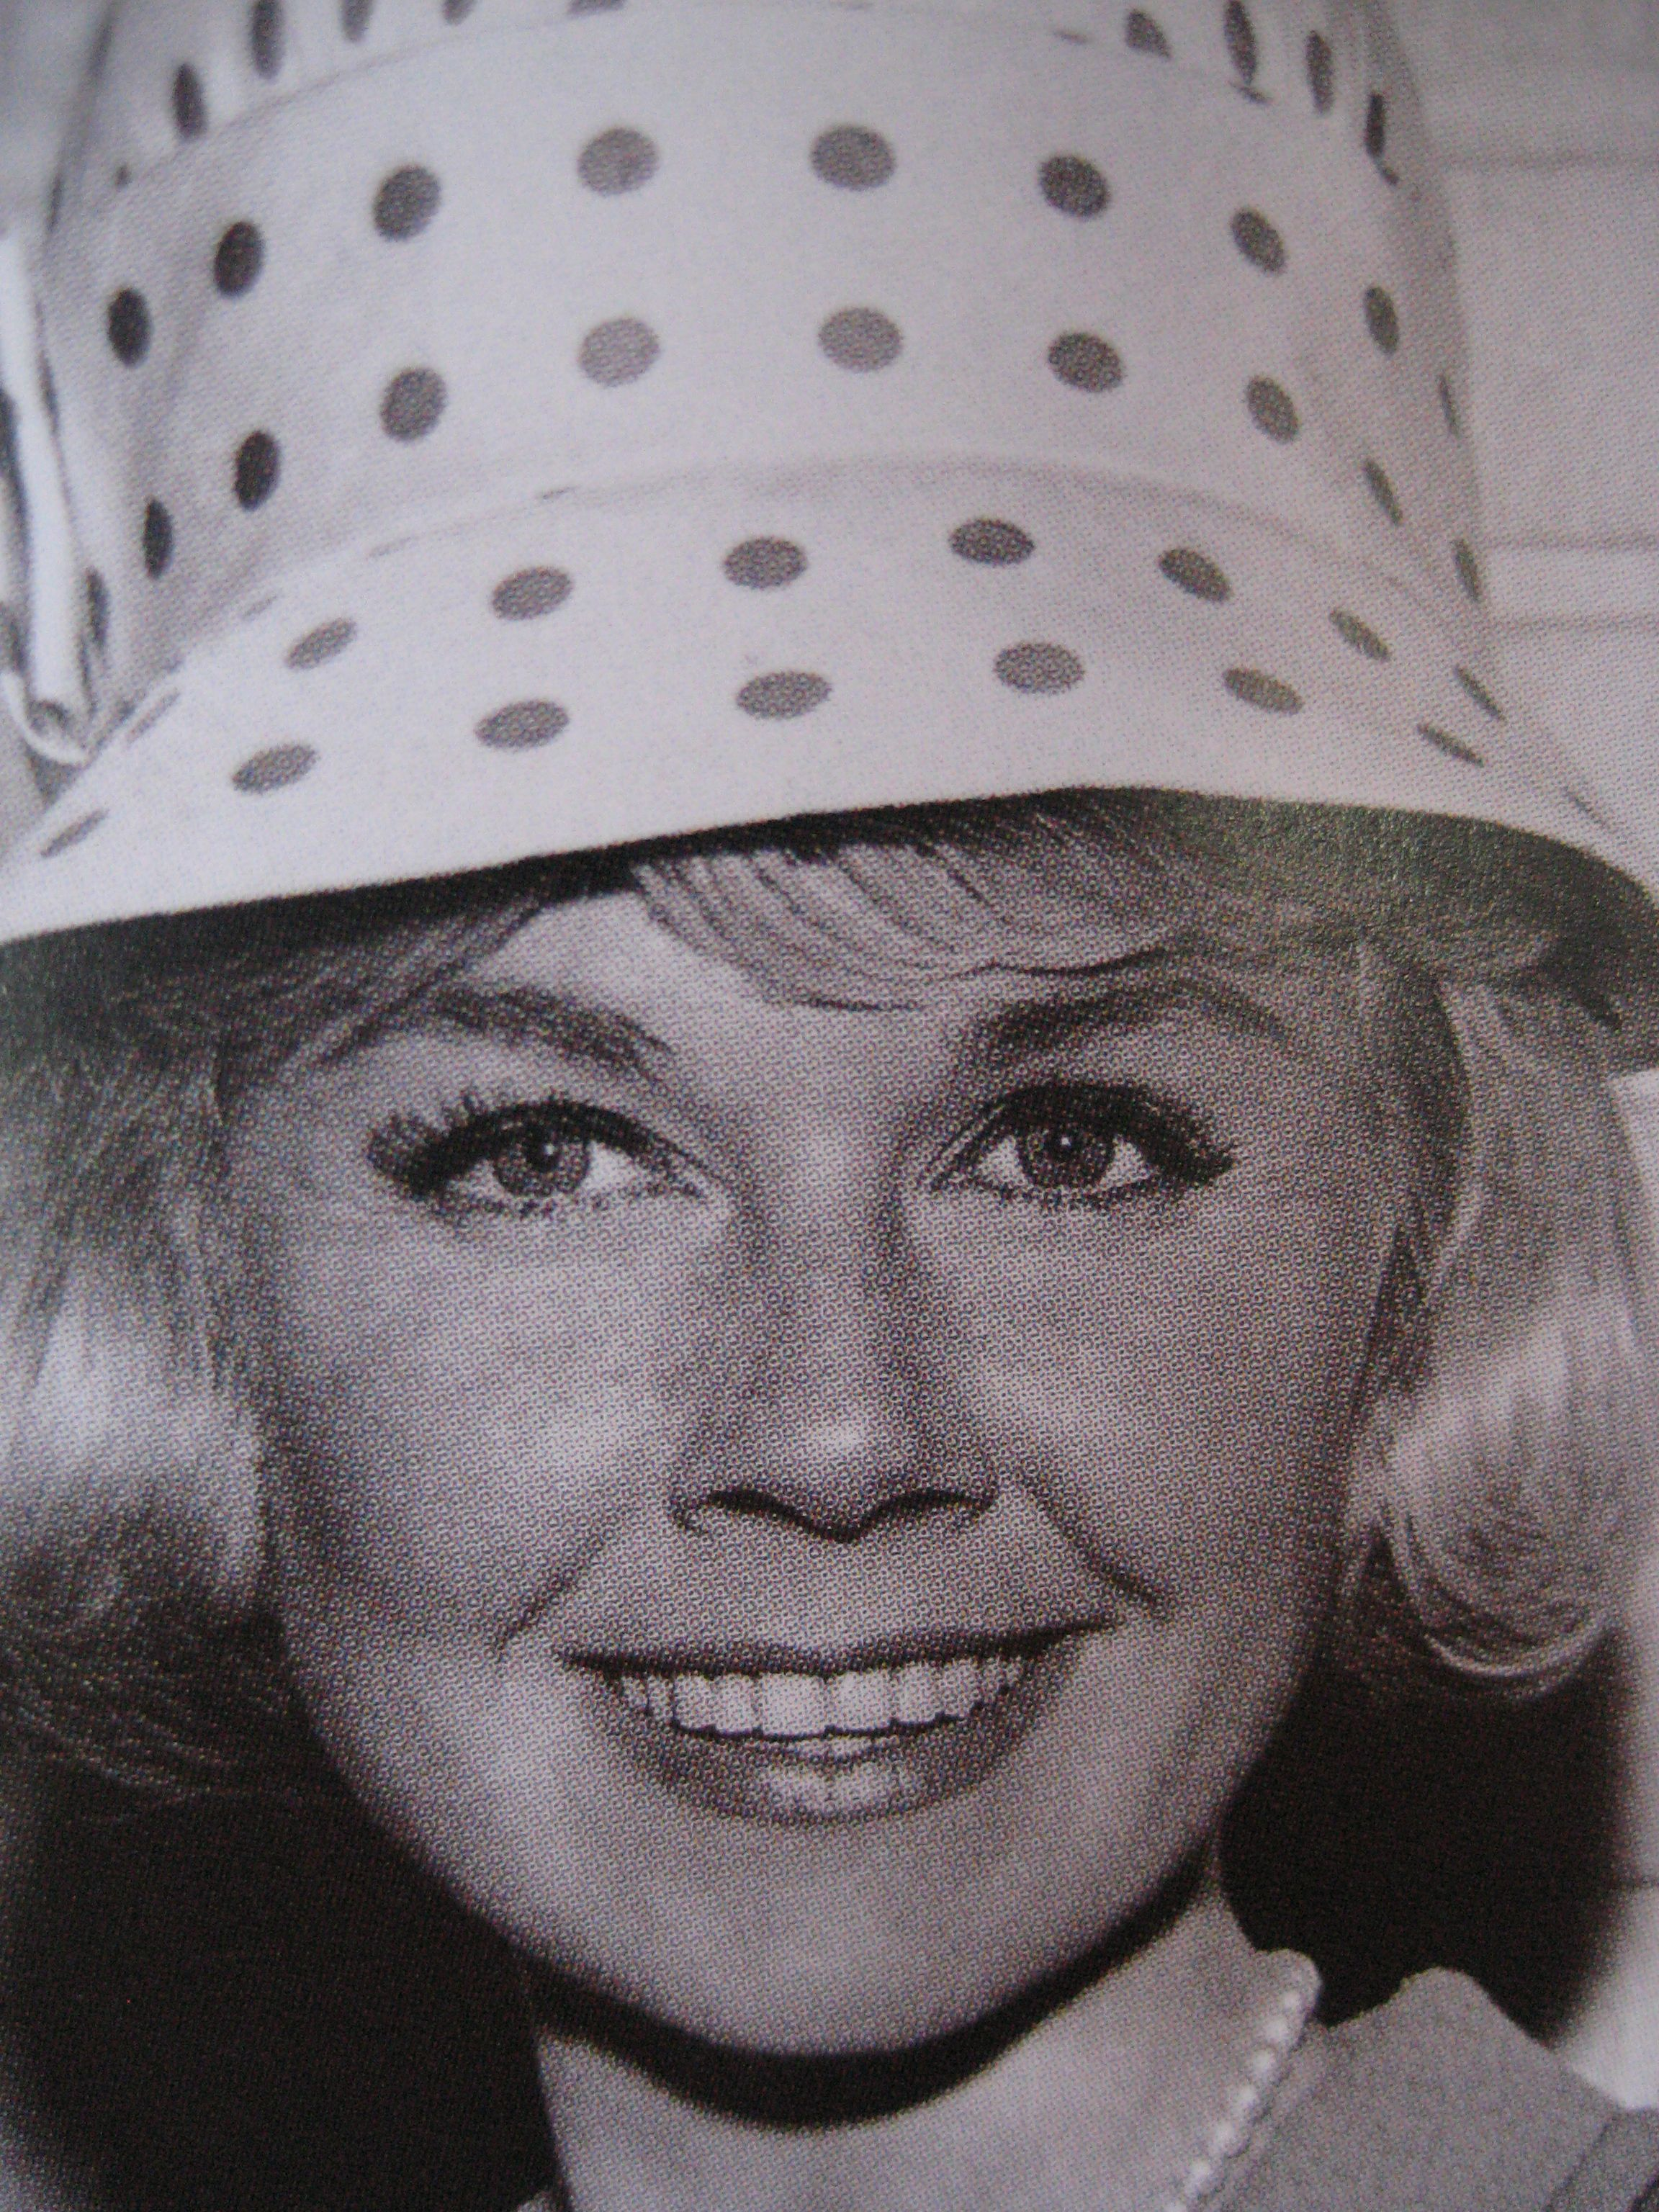 Doris Day. Cute as a button. Her films are such fun.